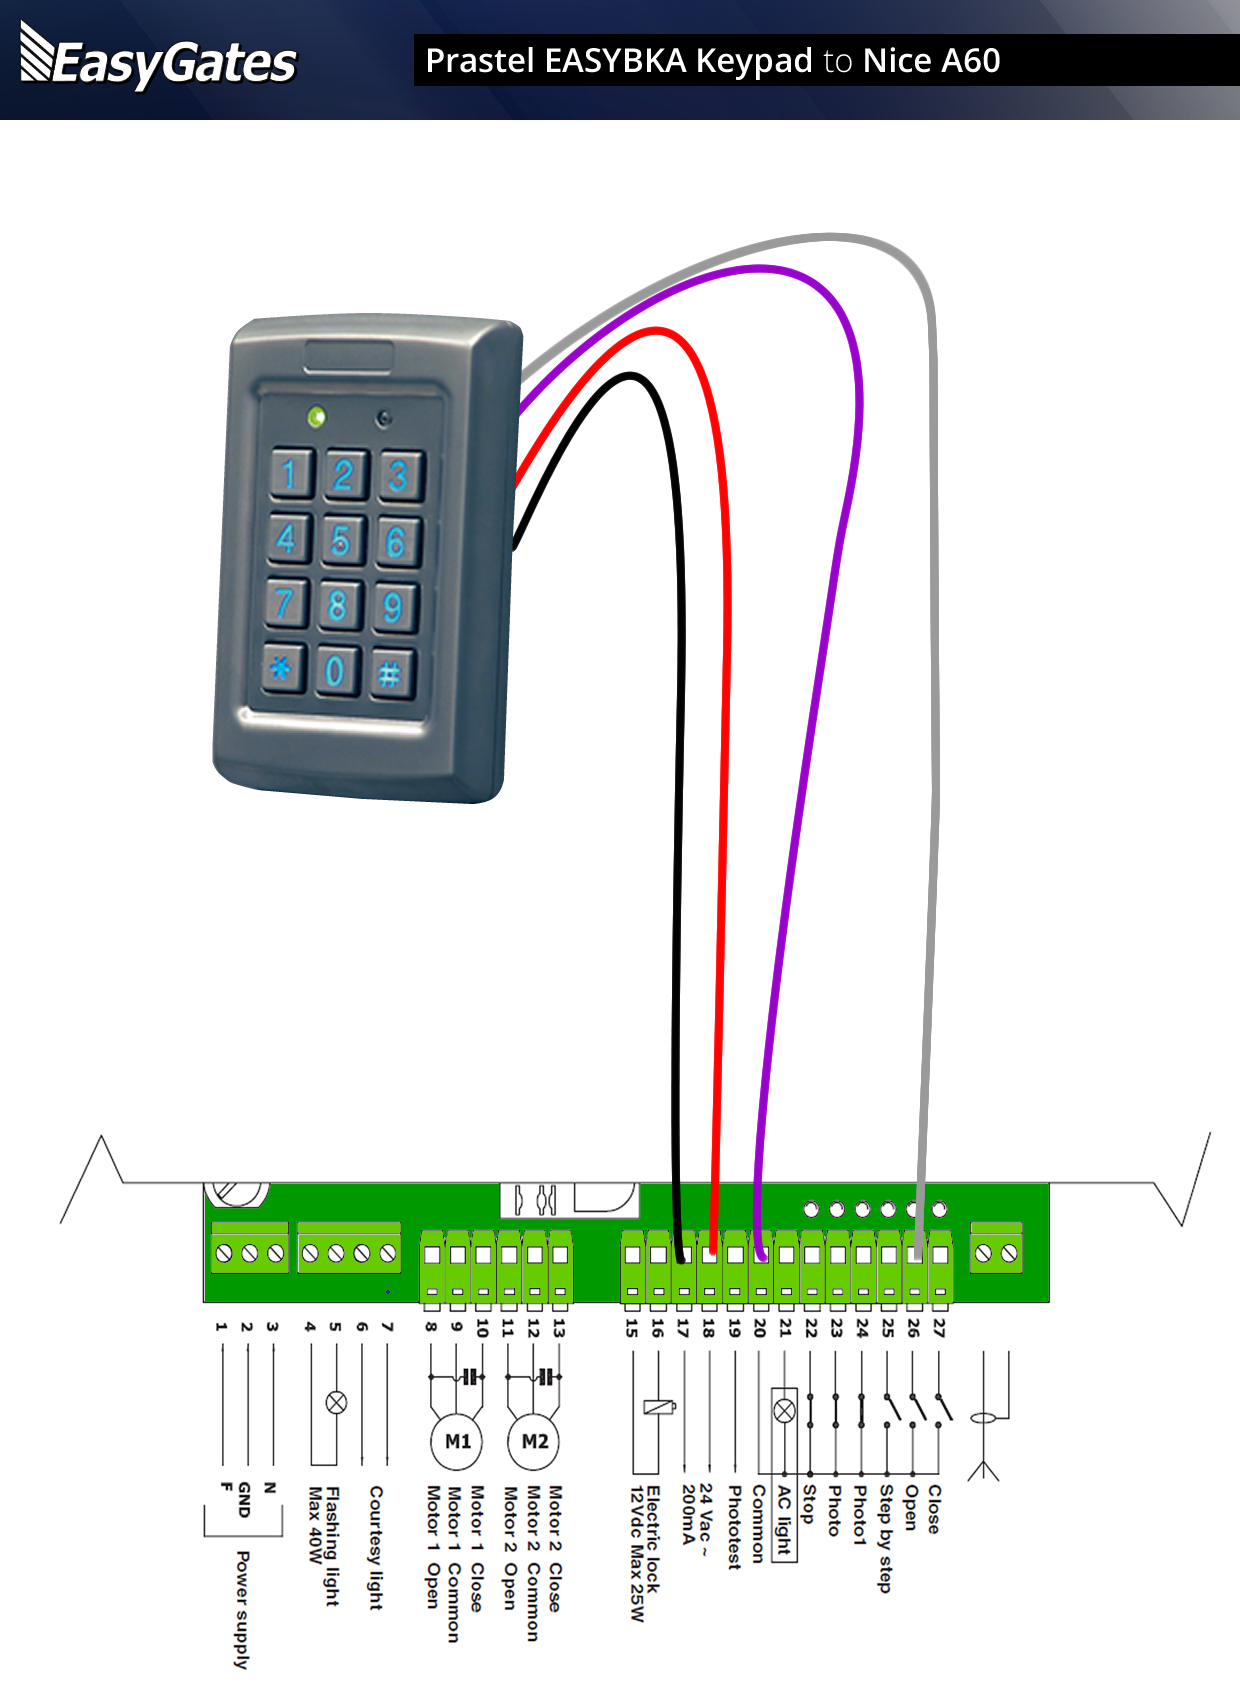 Gate photocell wiring diagram free download wiring diagram prastel easybka keypad to nice a60 control panel gate photocell wiring diagram 41 9 volt photocell wiring diagram outdoor photocell wiring cheapraybanclubmaster Choice Image